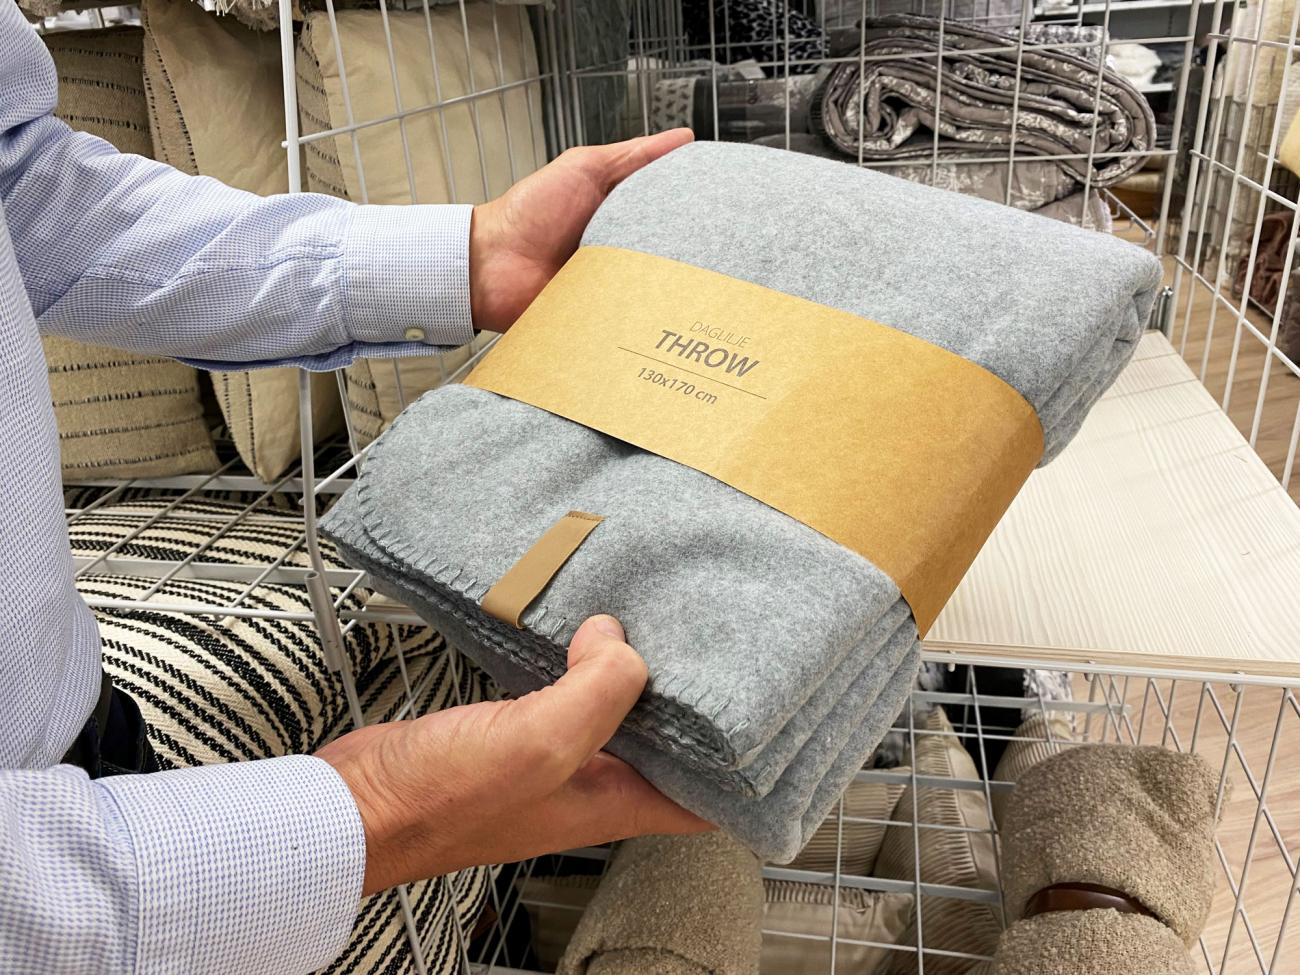 Home textiles are some of the first products to get new packaging design.